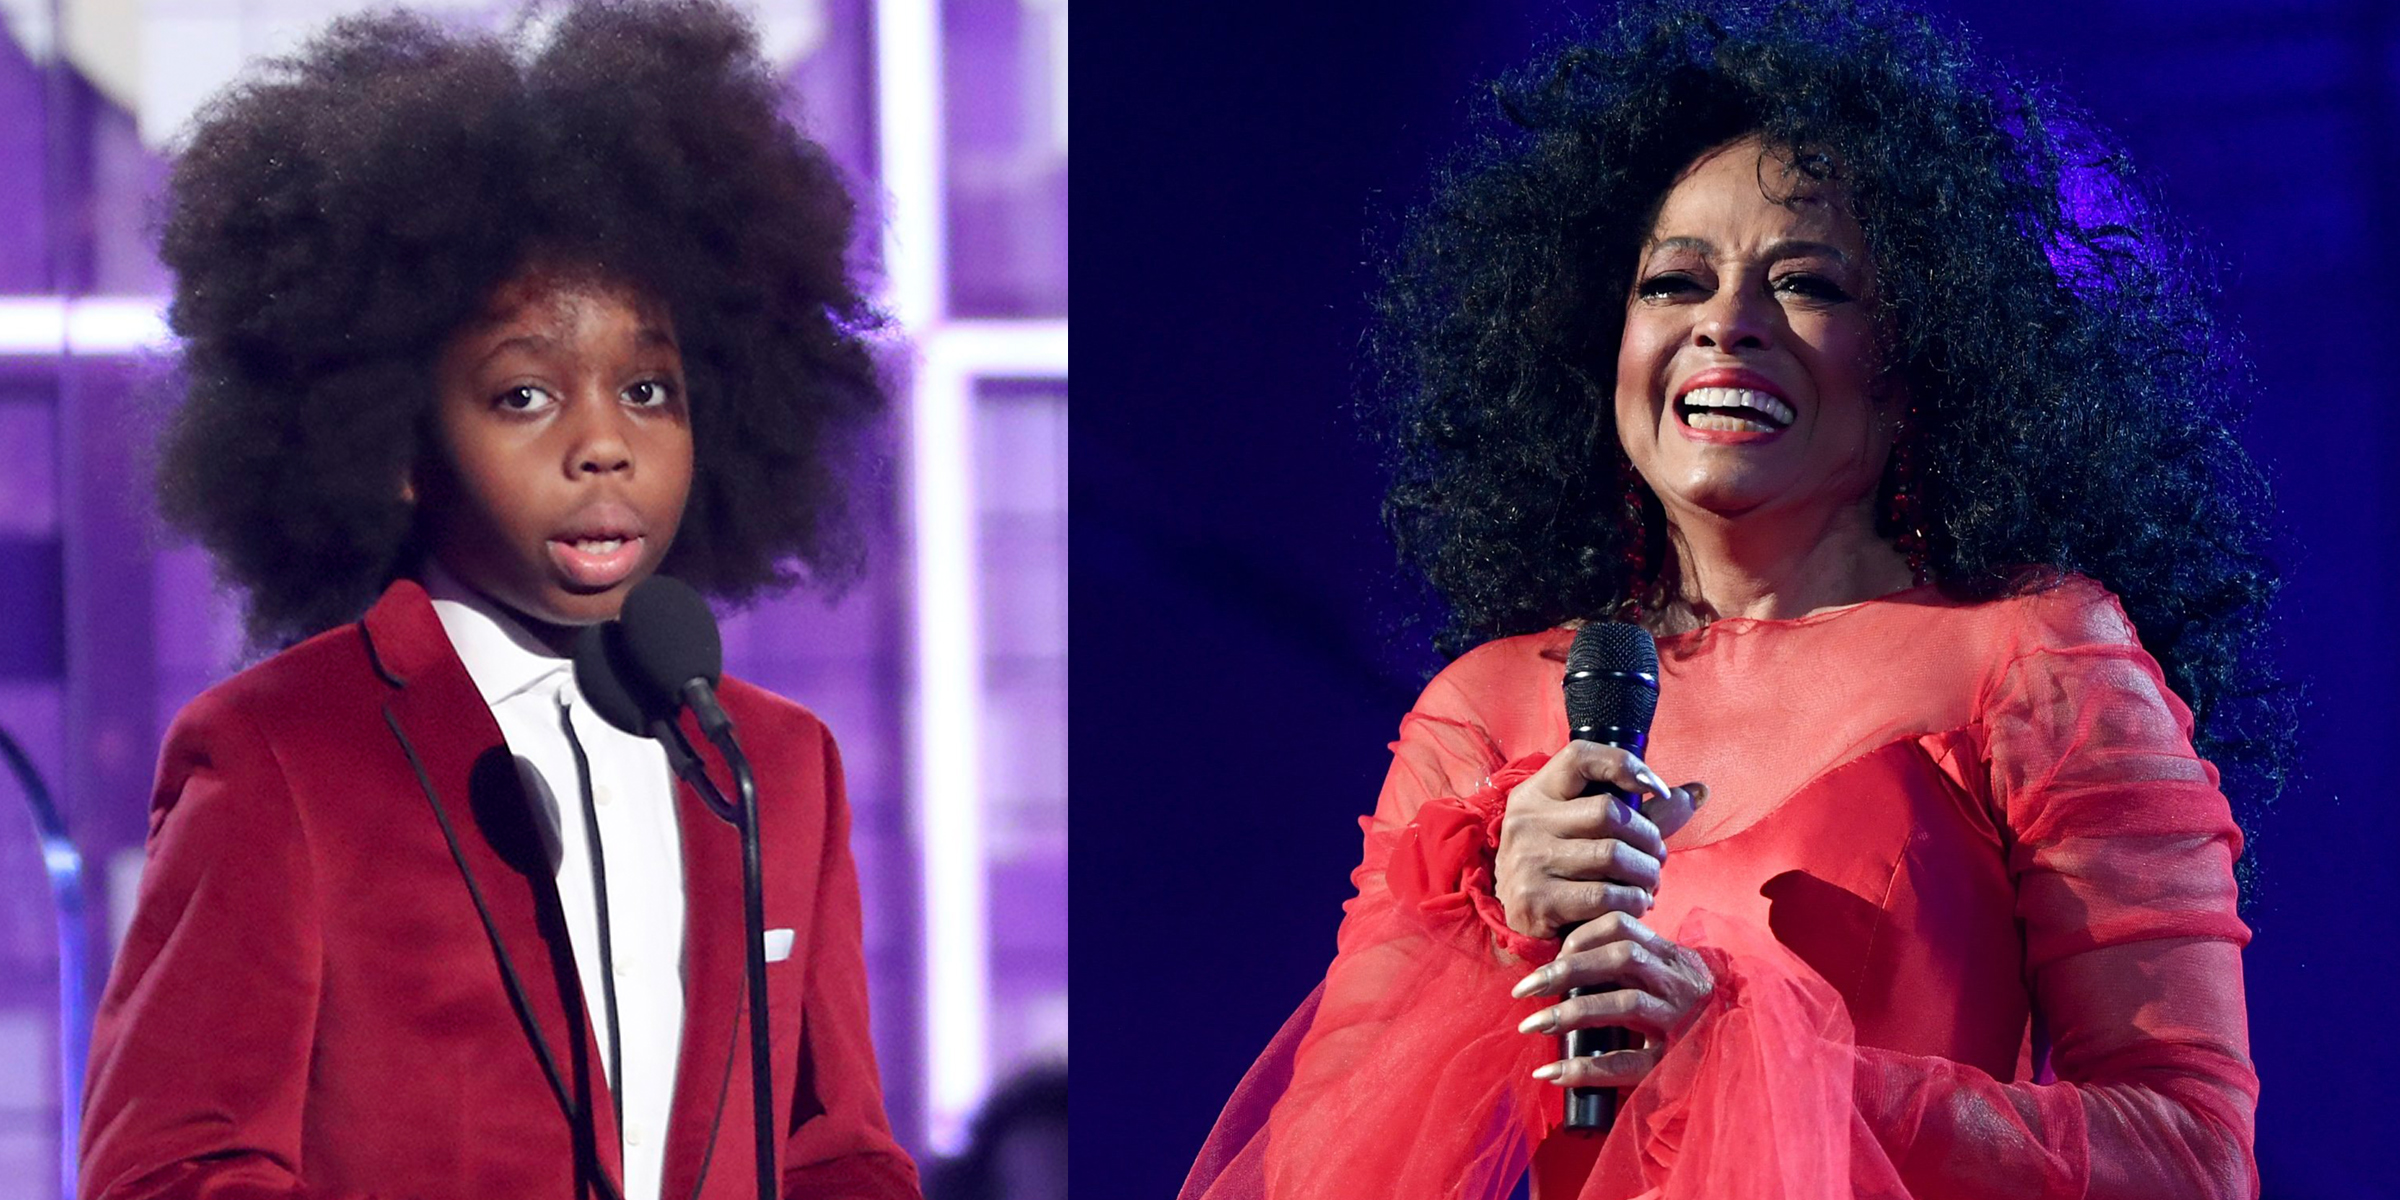 Diana Ross Adorable Grandson Steals The Show At The Grammy Awards